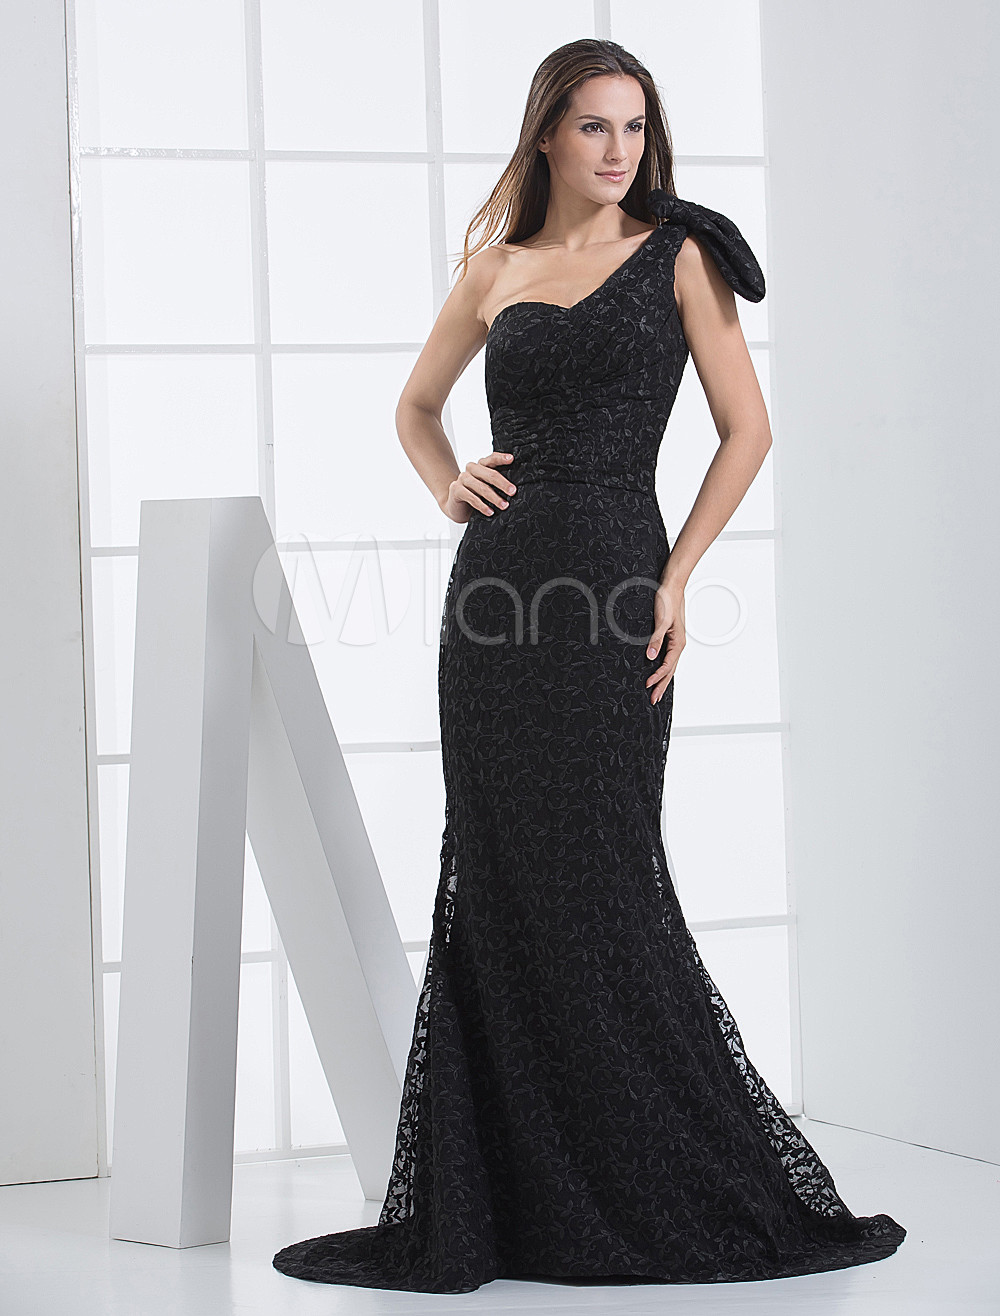 7f85f4ba2f Black Satin One Shoulder Train Ladies Evening Dress - Milanoo.com